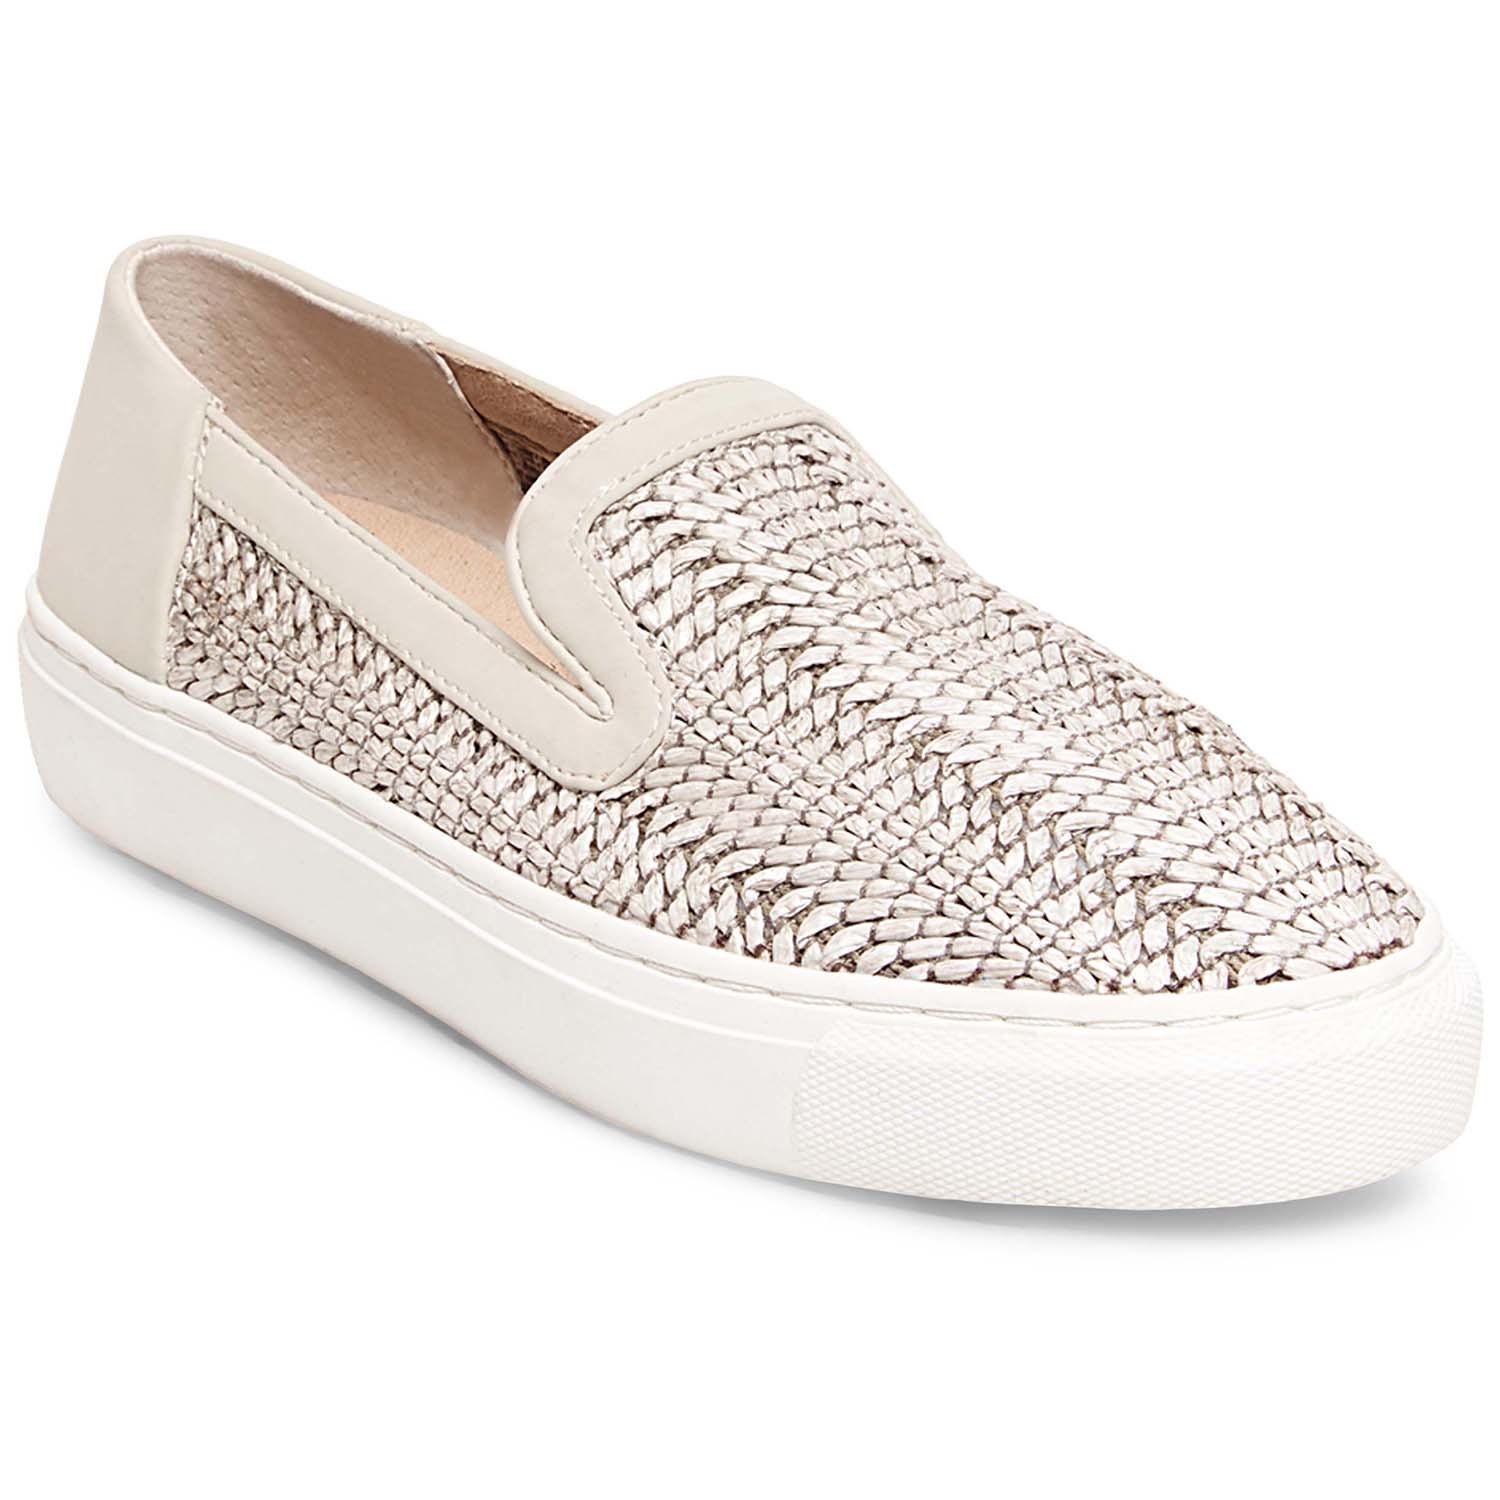 Steven by Steve Madden Kenner Shoes - Women's